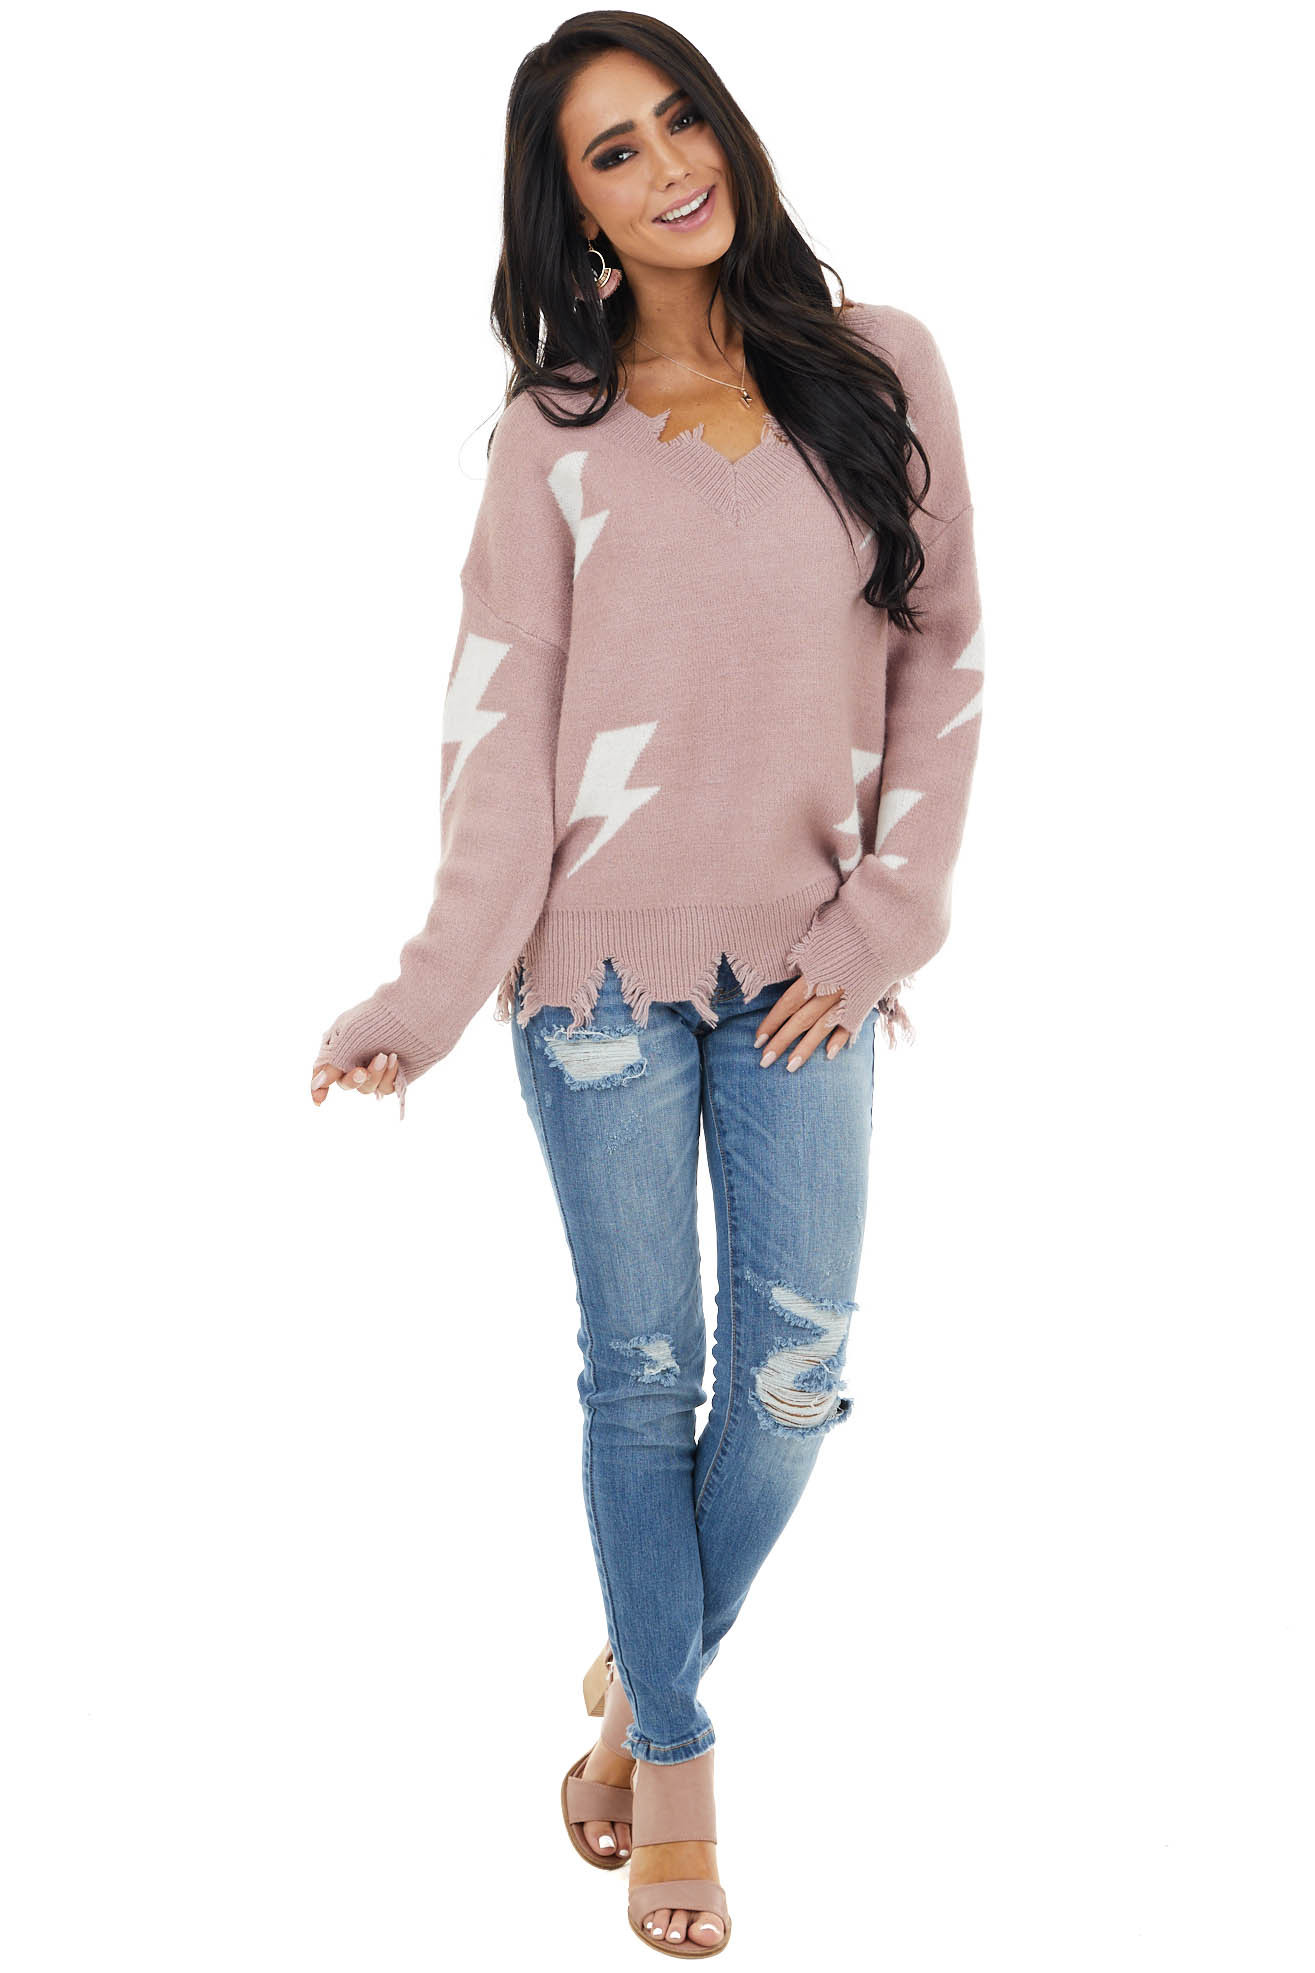 Mauve Lightning Bolt Print Sweater with Distressed Details